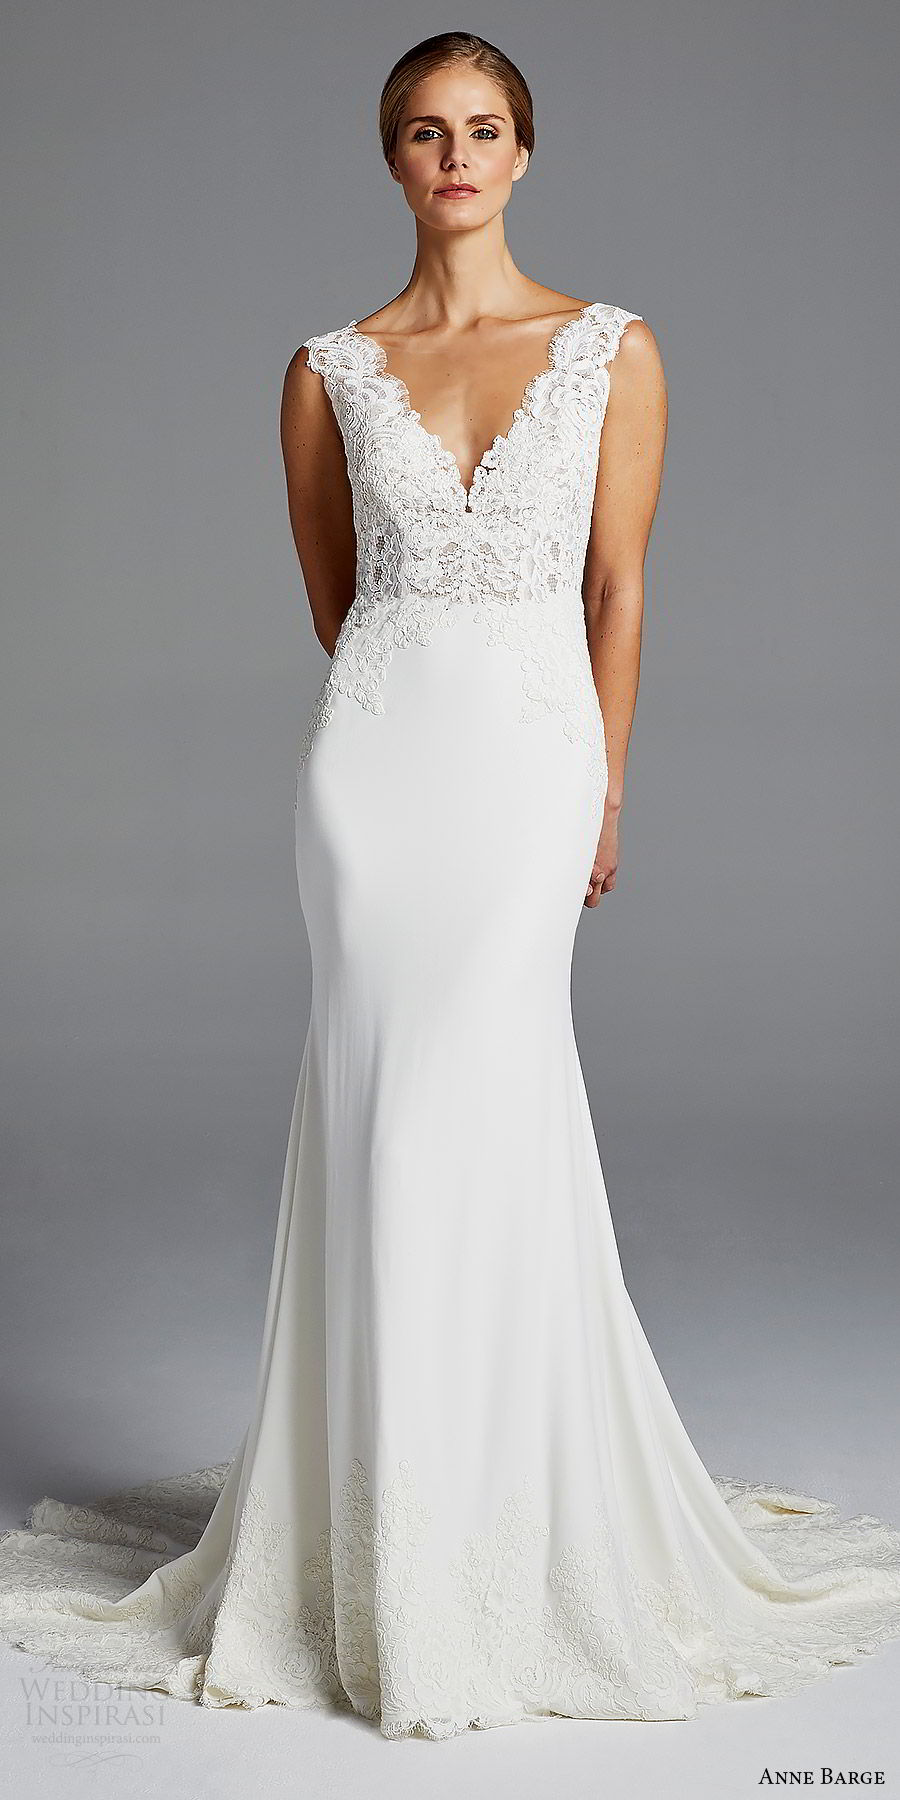 anne barge bridal spring 2019 sleeveless thick lace straps deep v neck embellished bodice sheath wedding dress (lana) mv chic elegant